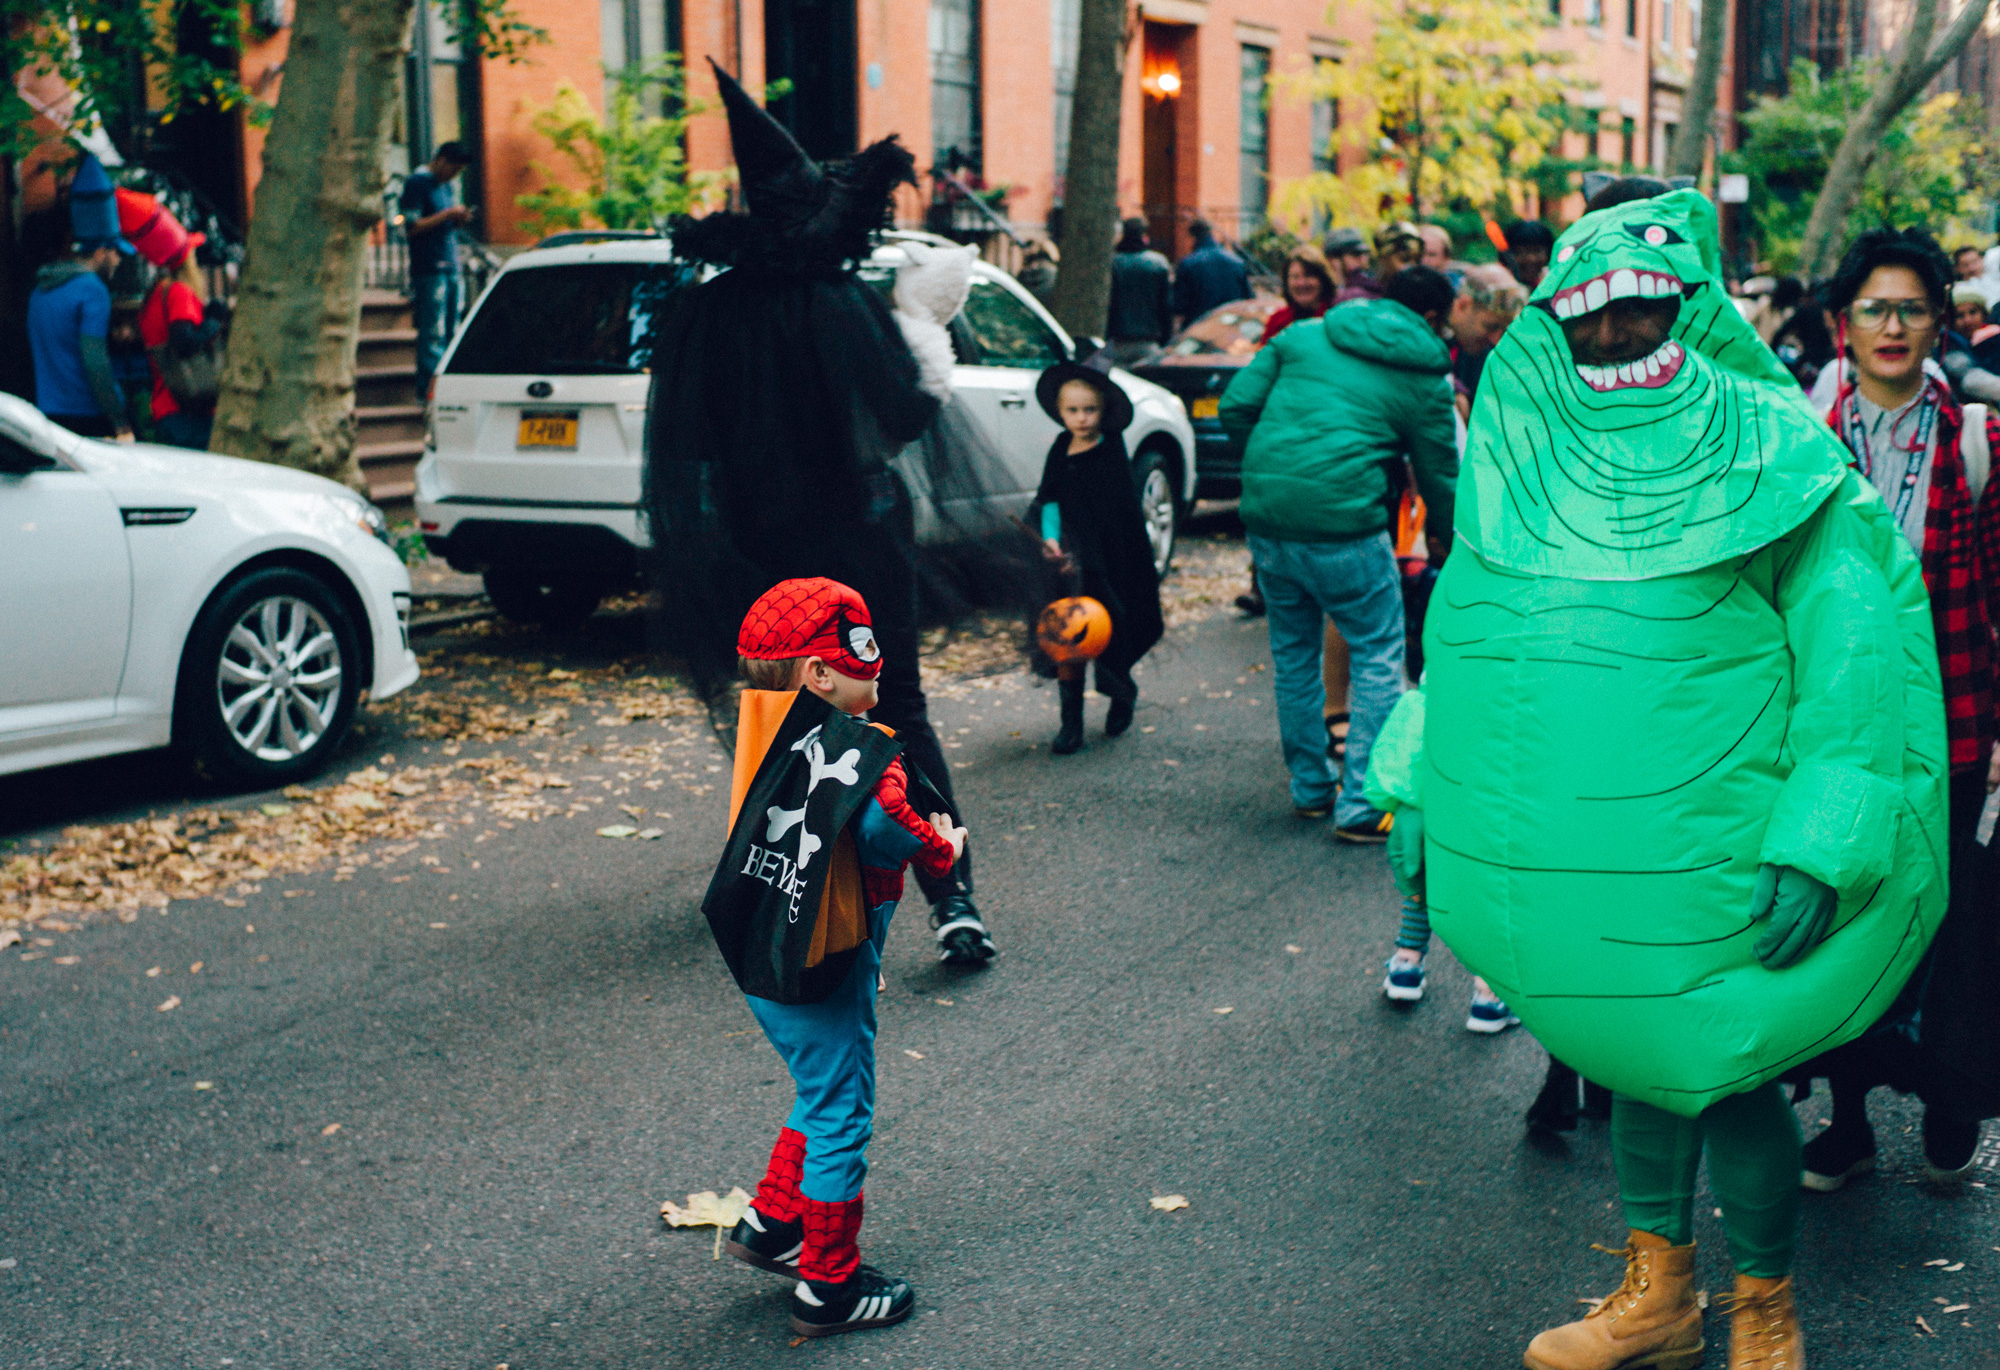 Halloween Nyc 2020 Park Slope 2018's best NYC neighborhoods for Halloween trick or treating | 6sqft